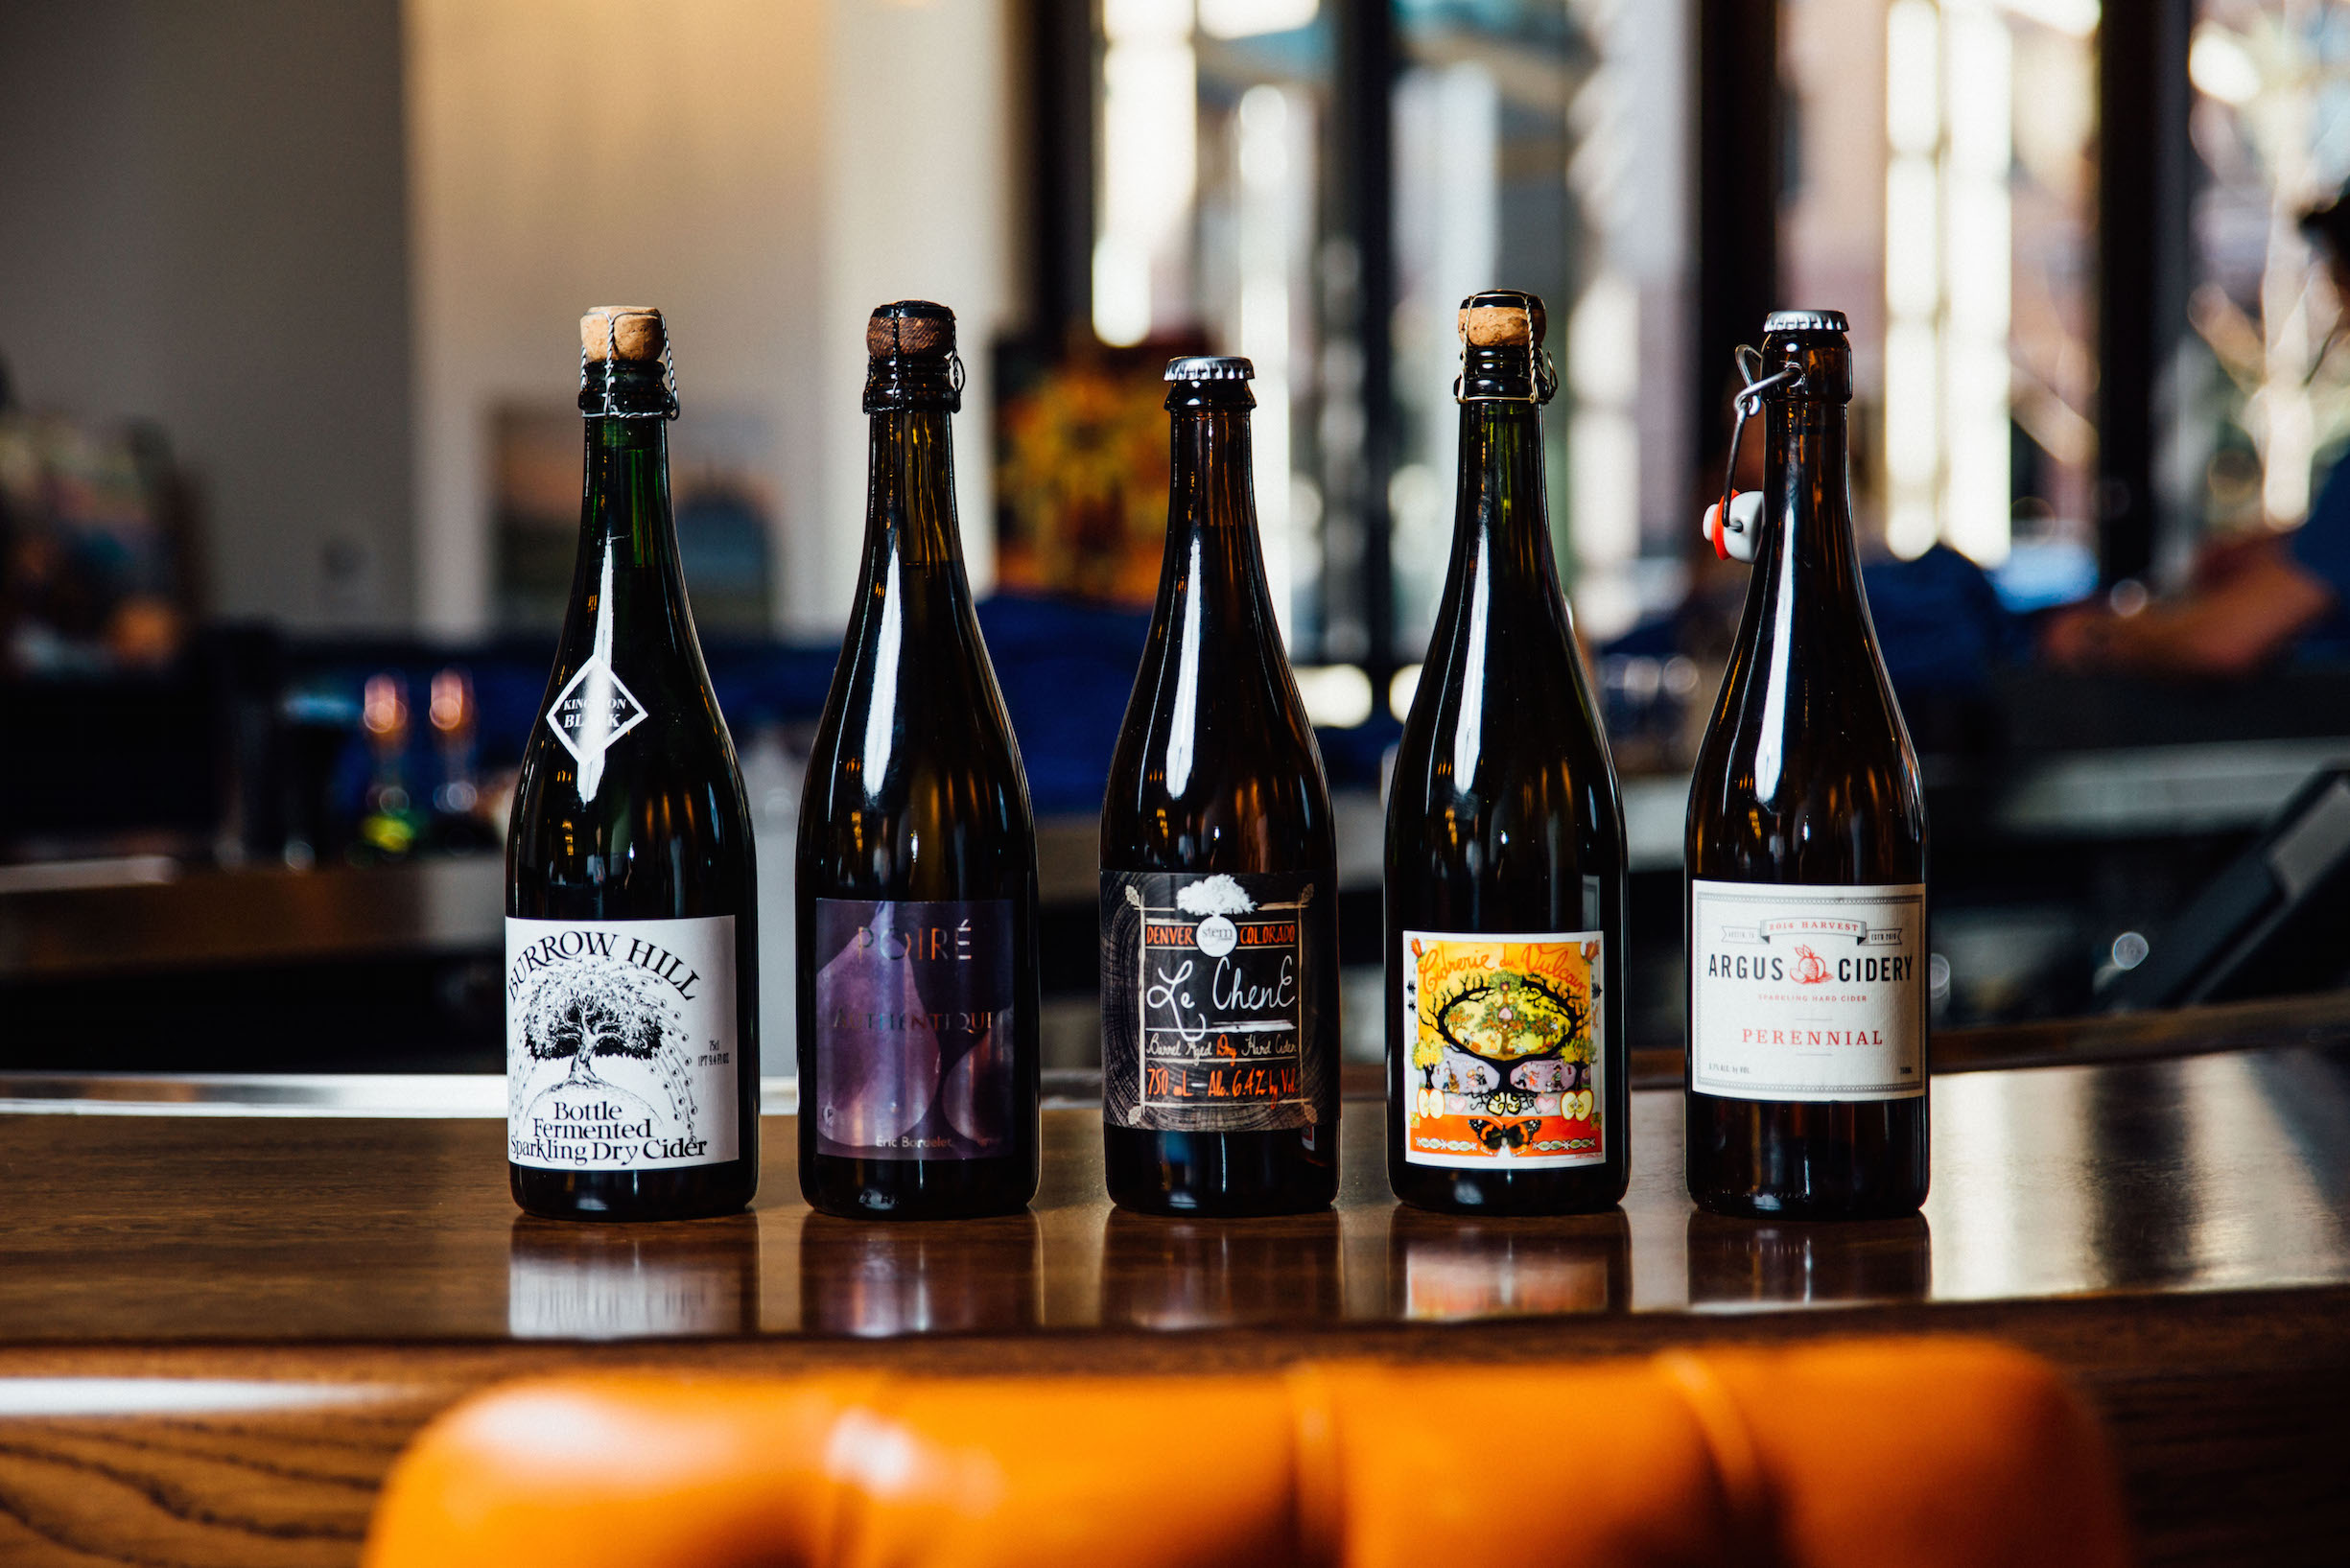 Some of the ciders available at Arcana. Photo by Noah Berg.